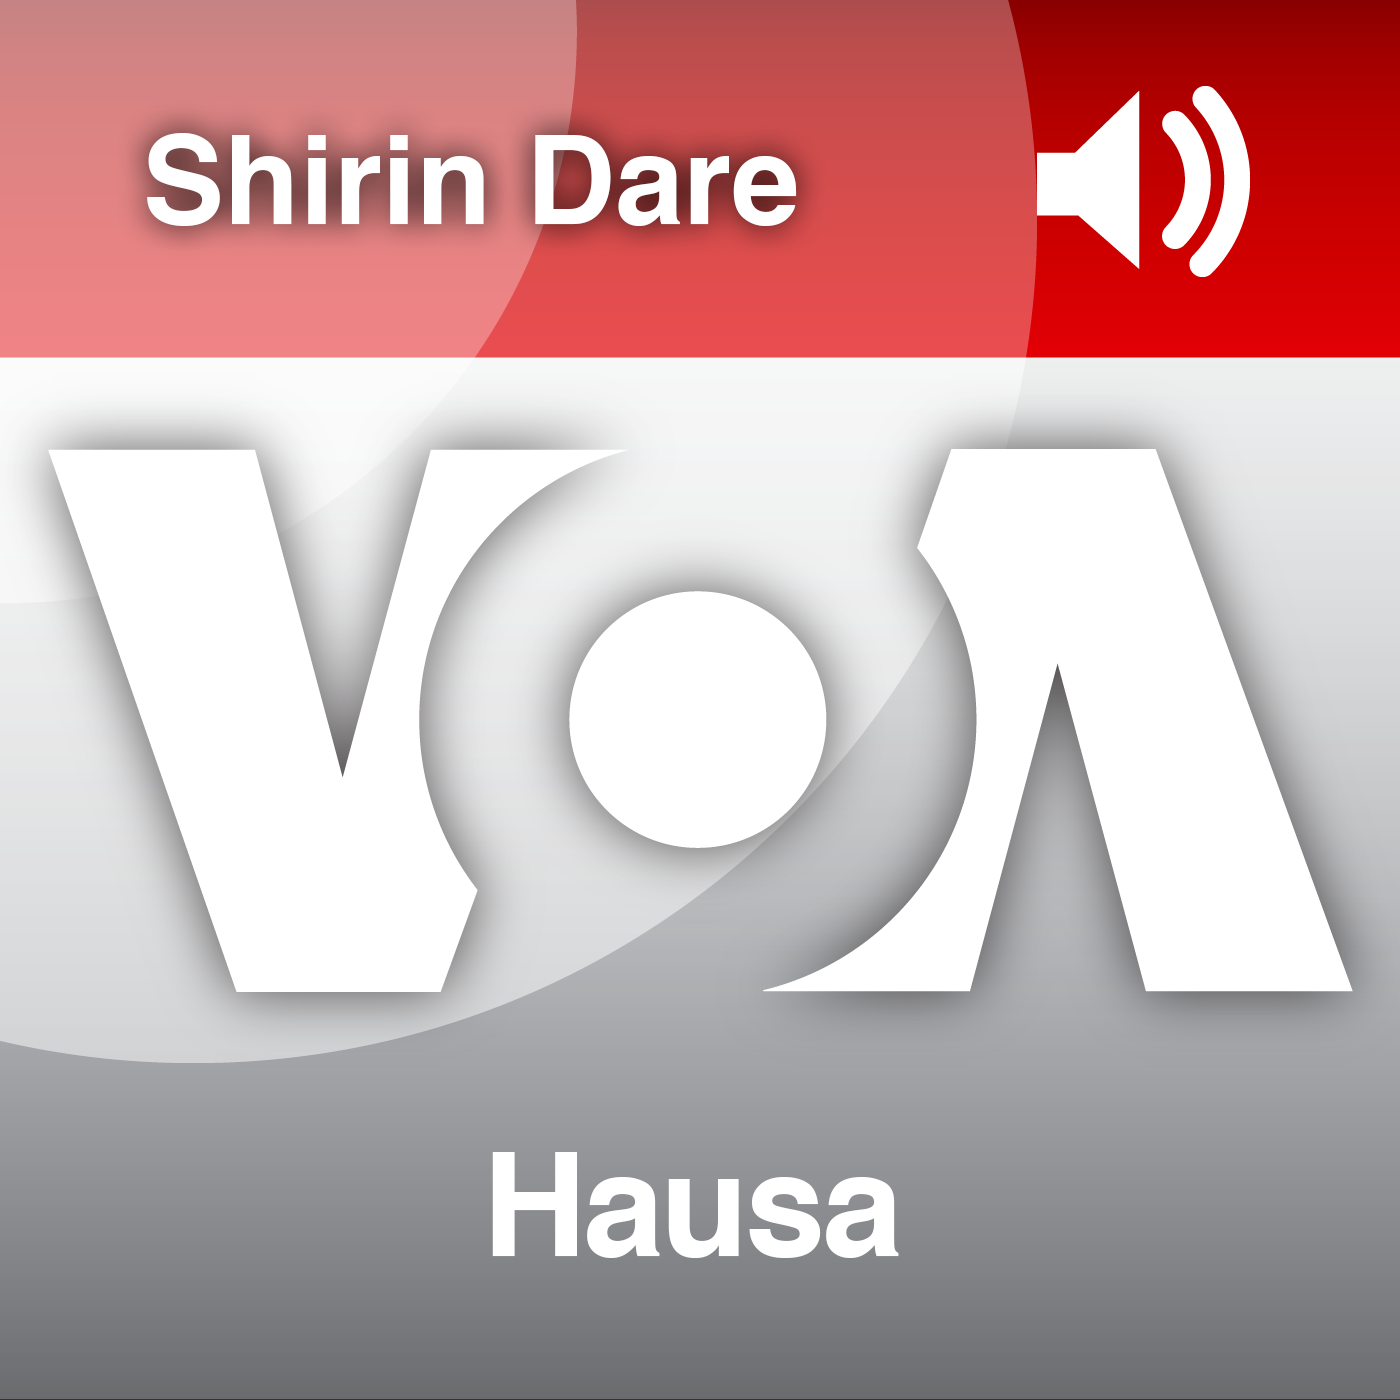 Shirin Dare - Voice of America